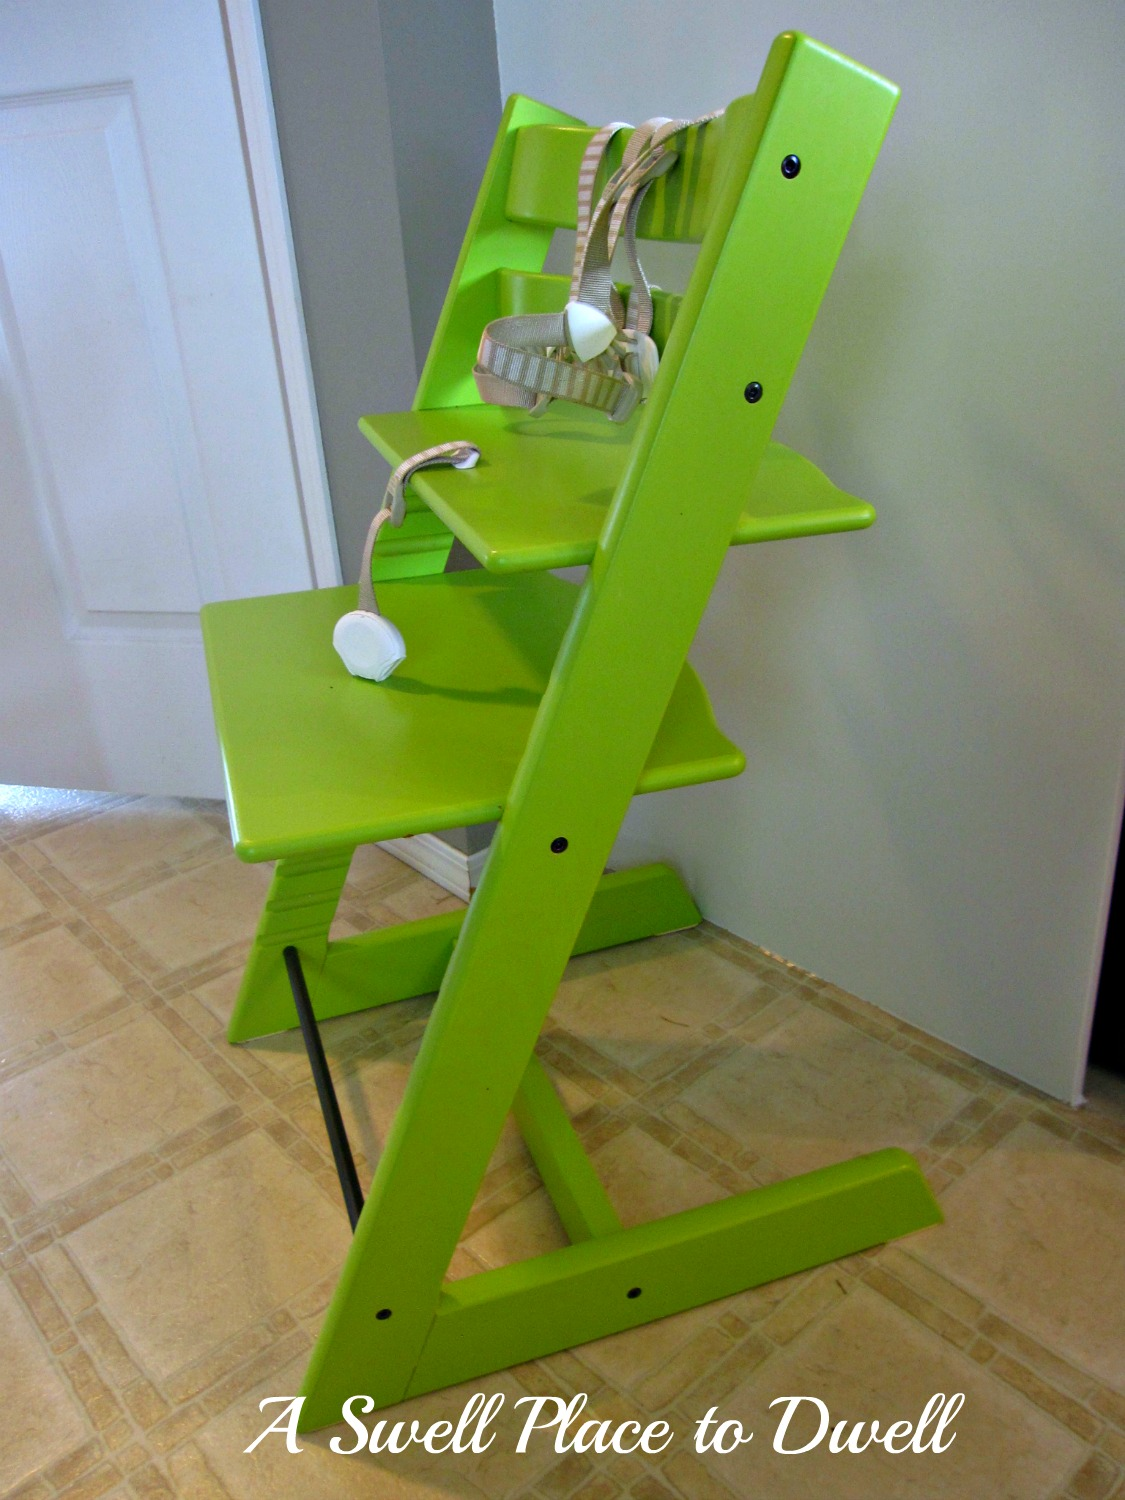 stokke high chair second hand bariatric shower with wheels a swell place to dwell parenting